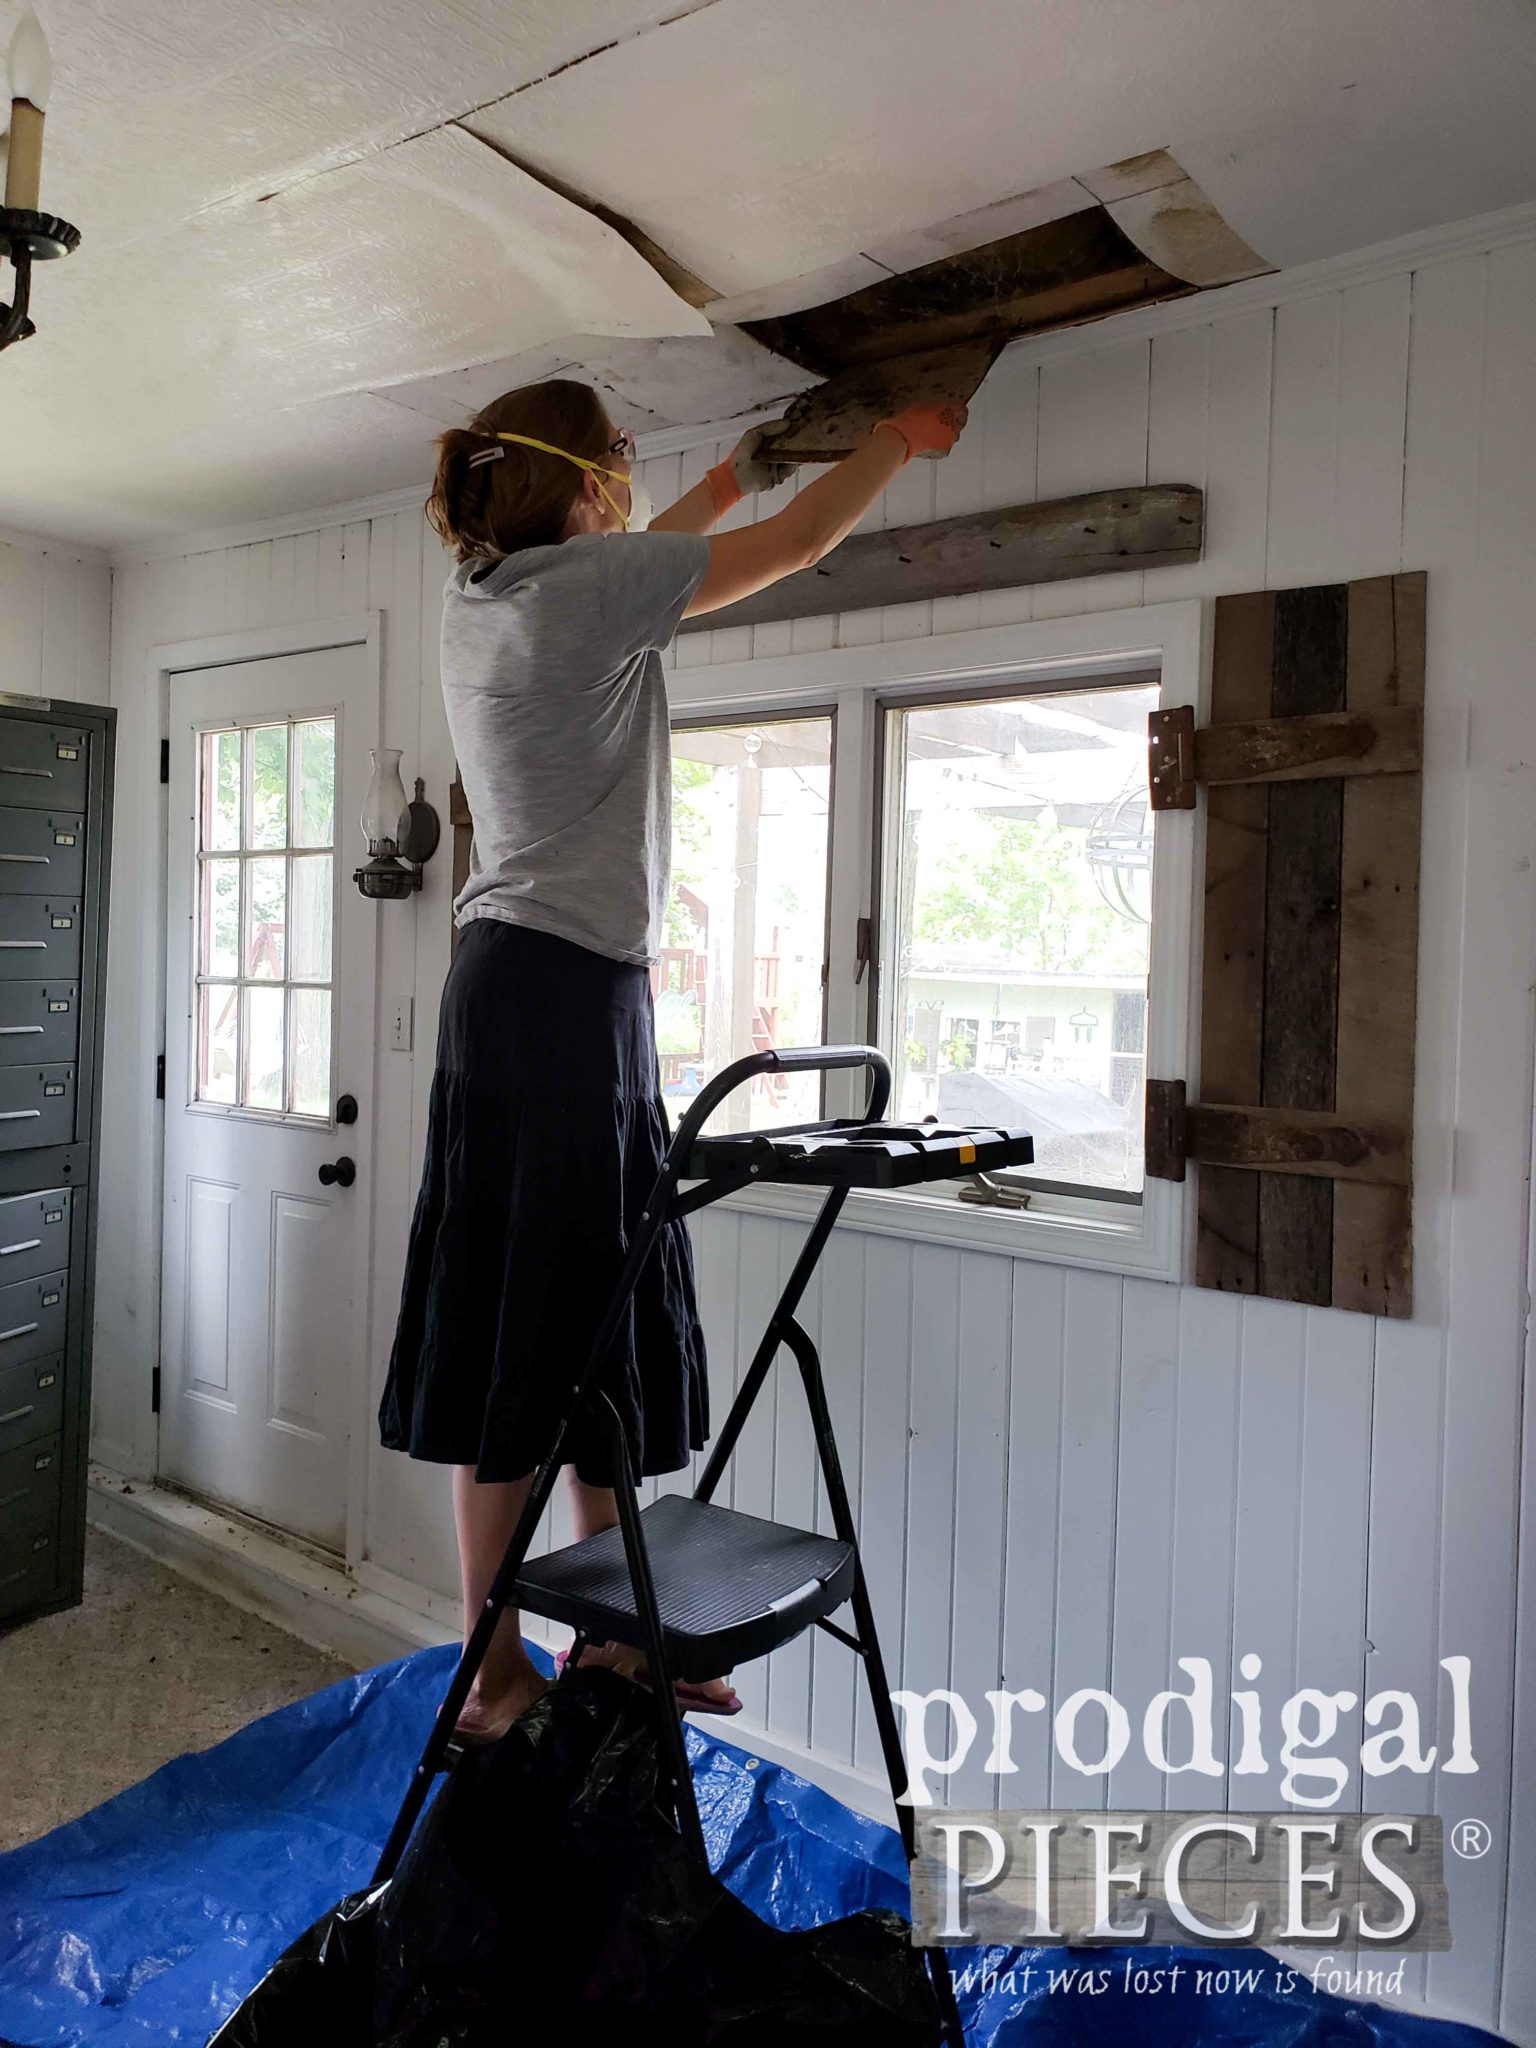 Larissa of Prodigal Pieces Tearing Down Damaged Family Room Ceiling | prodigalpieces.com